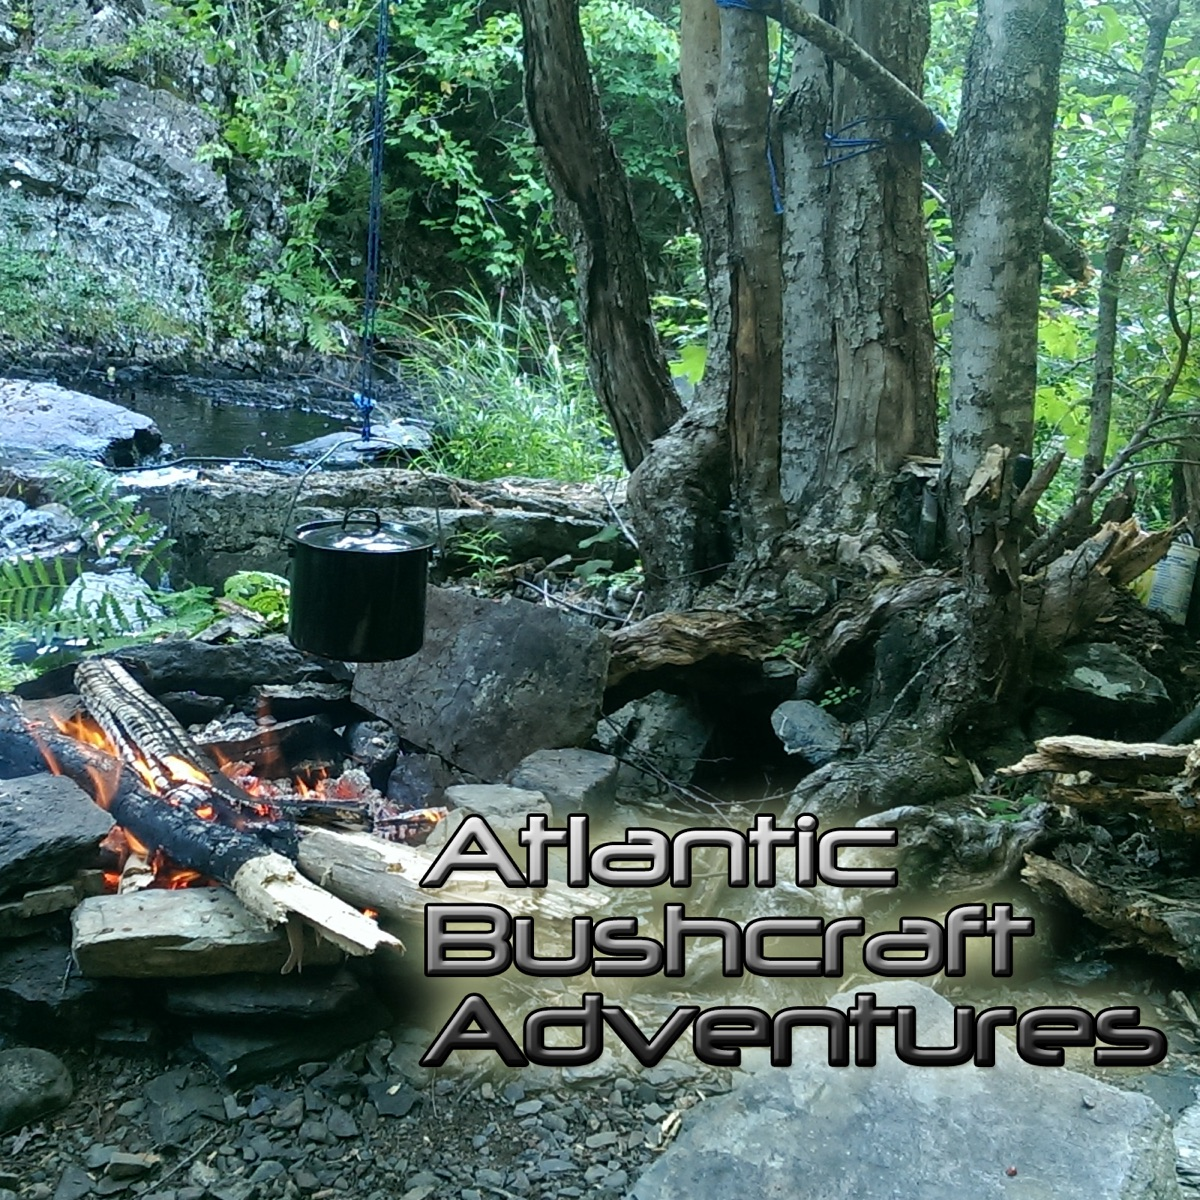 Atlantic Bushcraft Adventures